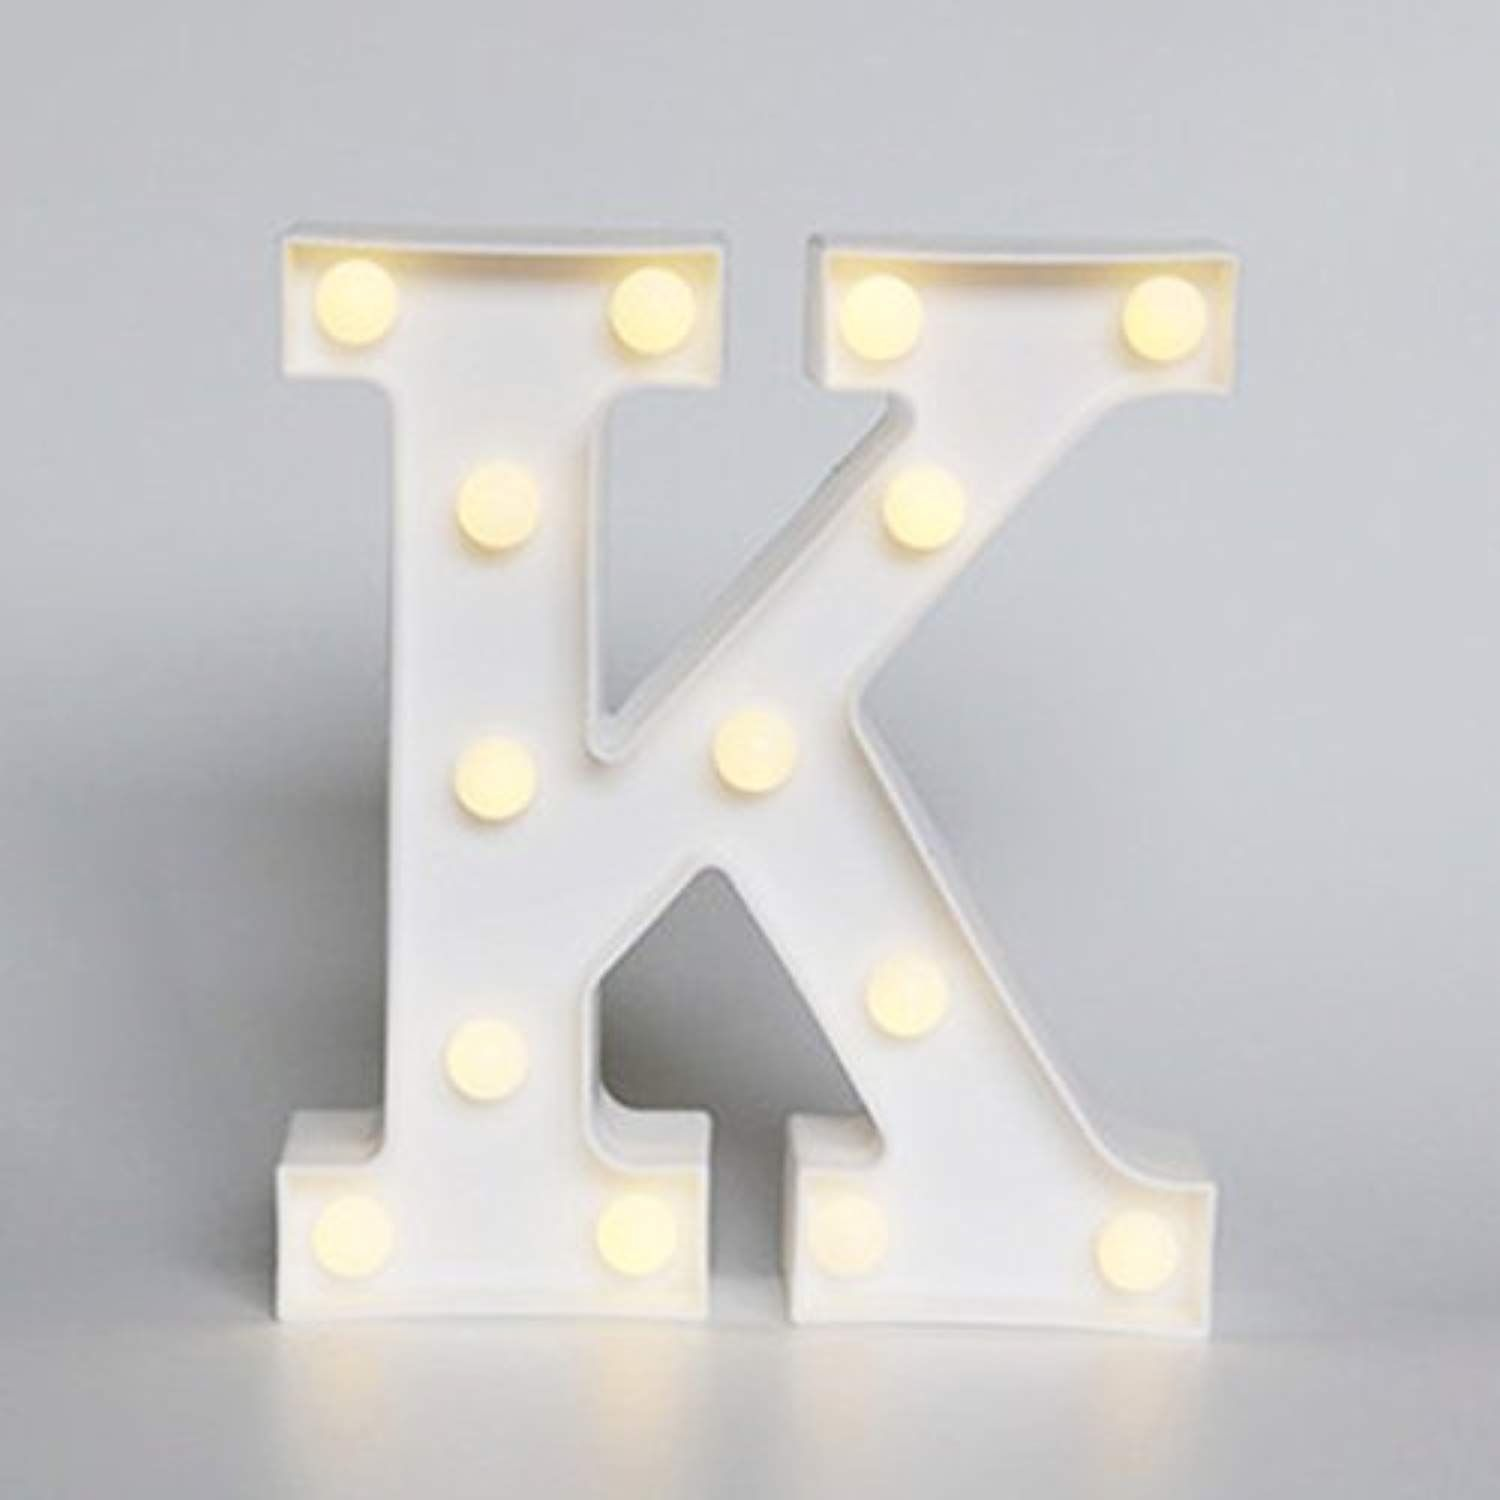 Diy Led Decorative Marquee Alphabet Letter Lights Sign Light Up Letter Lights Battery Operated Party Weddin Wall Decor Lights Light Up Letters Light Letters